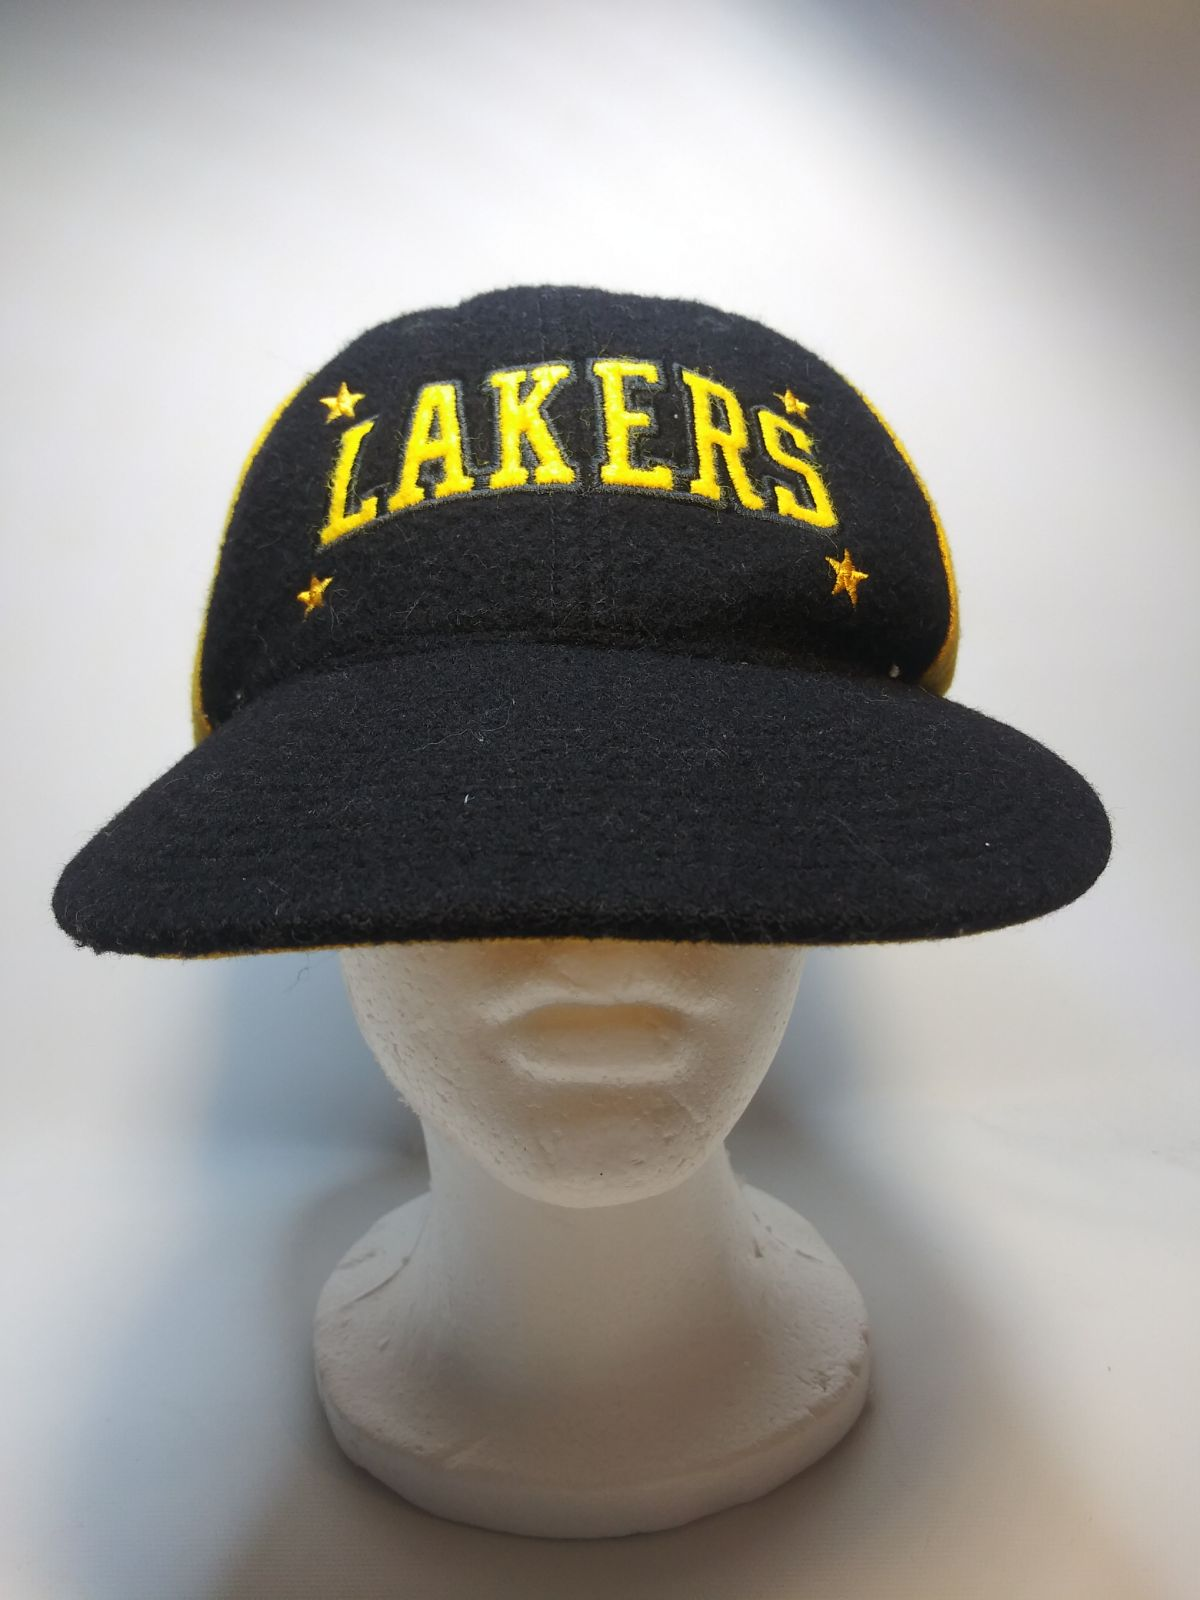 Very cool Lakers Hat